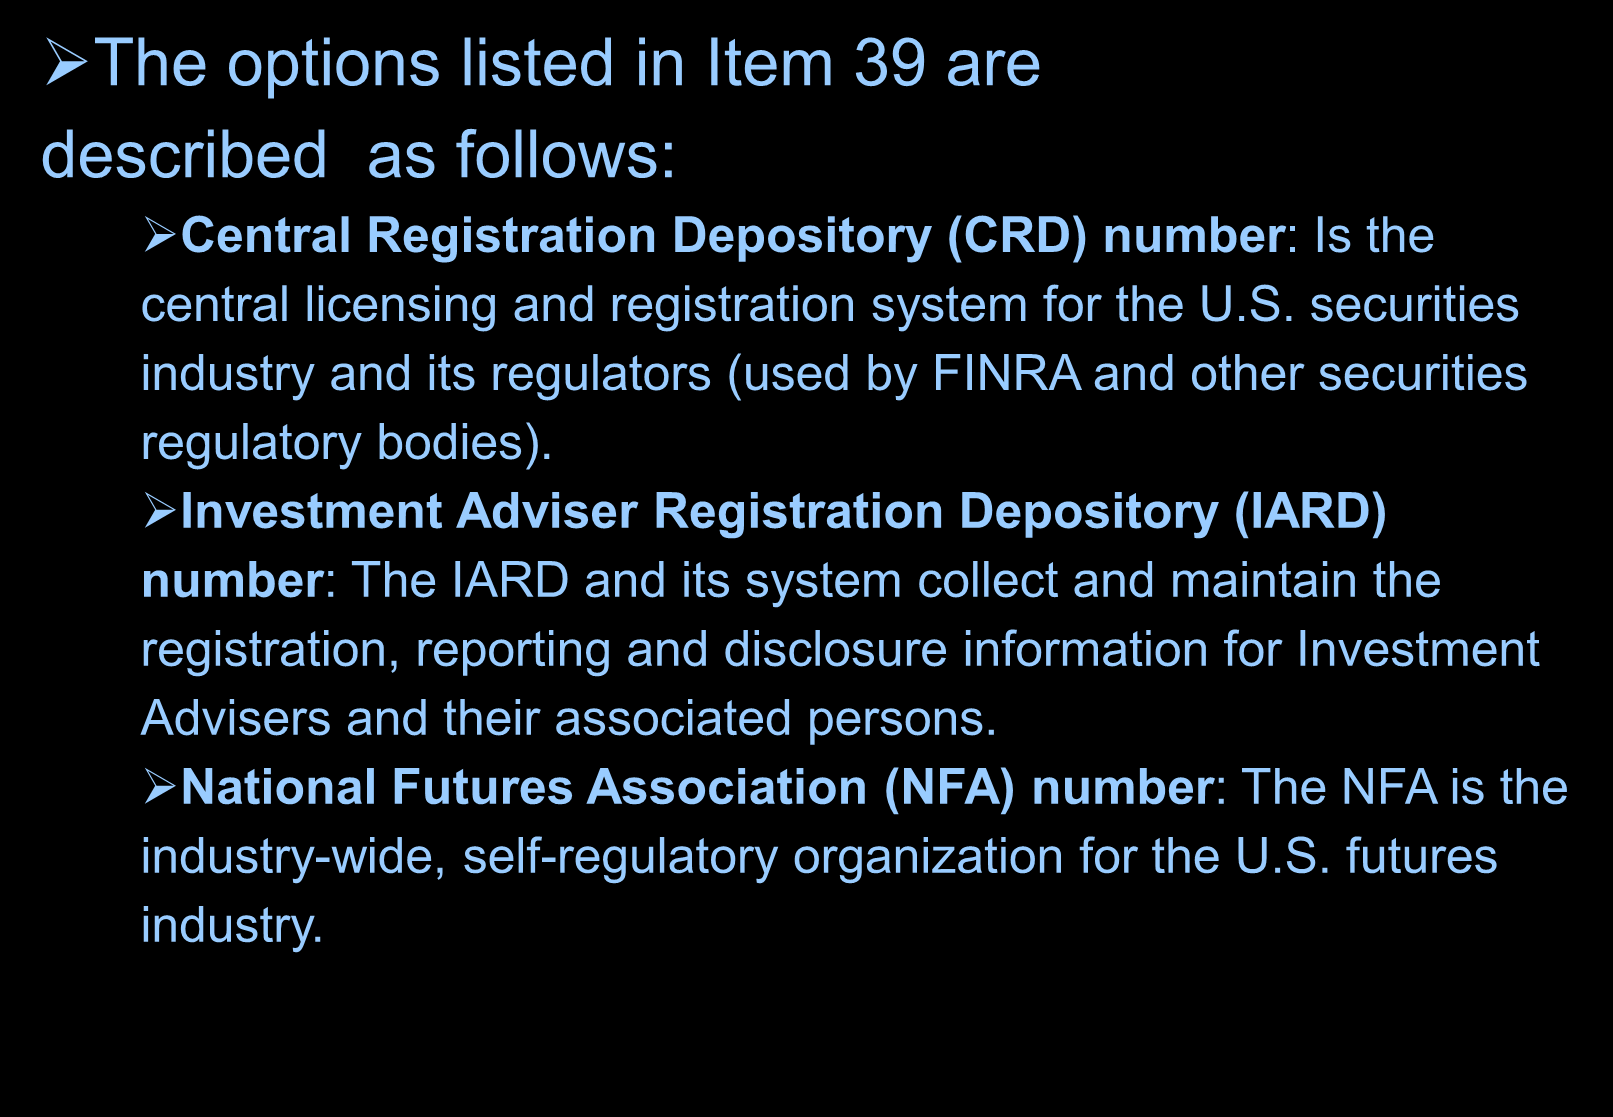 Financial Institution Identification The options listed in Item 39 are described as follows: Central Registration Depository (CRD) number: Is the central licensing and registration system for the U.S.